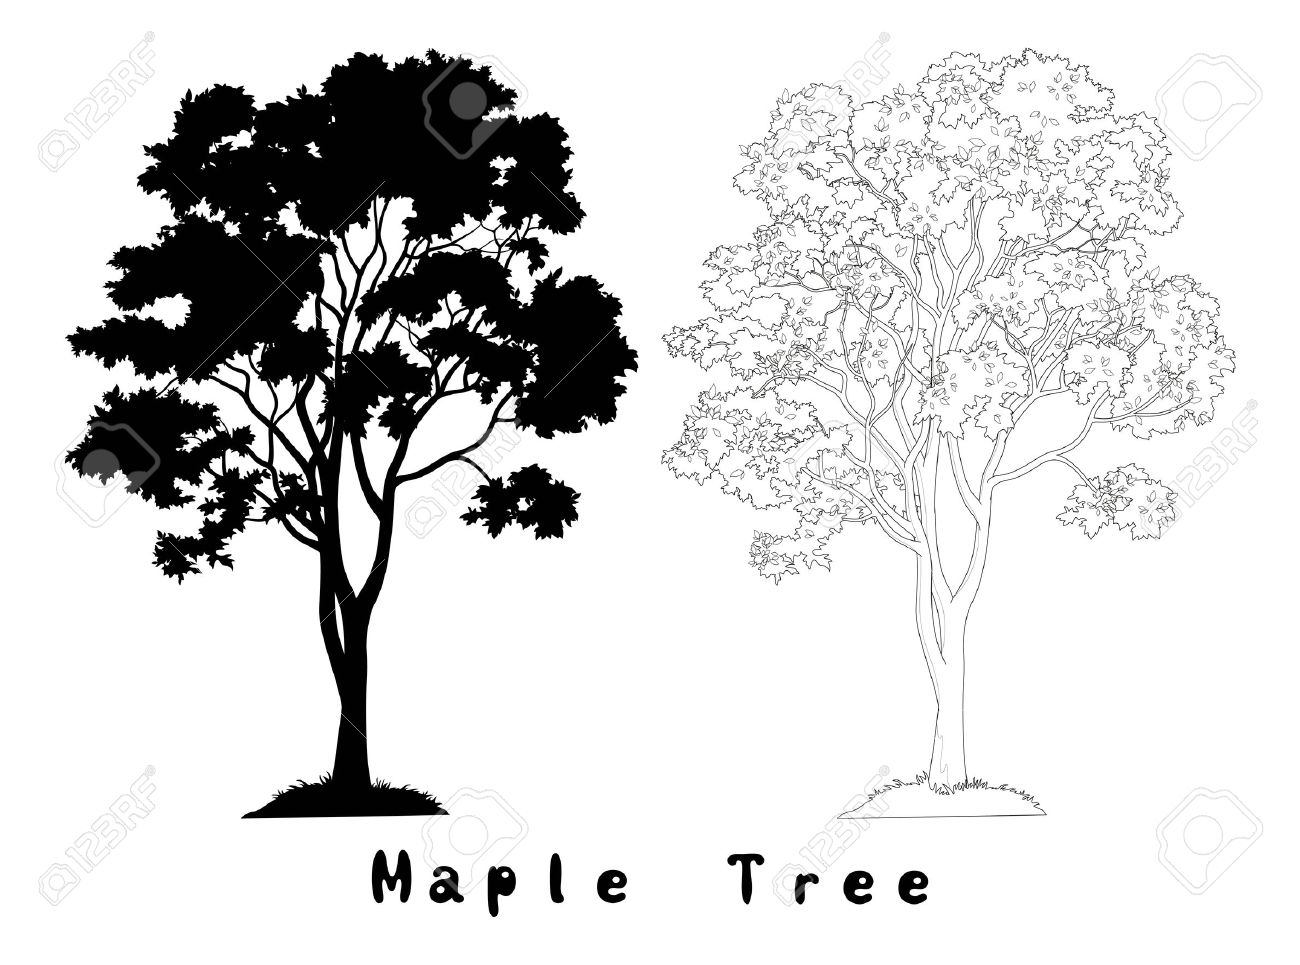 Maple Tree with Leaves and Grass Black Silhouette, Contours and Inscriptions Isolated on White Background. Vector - 38675032